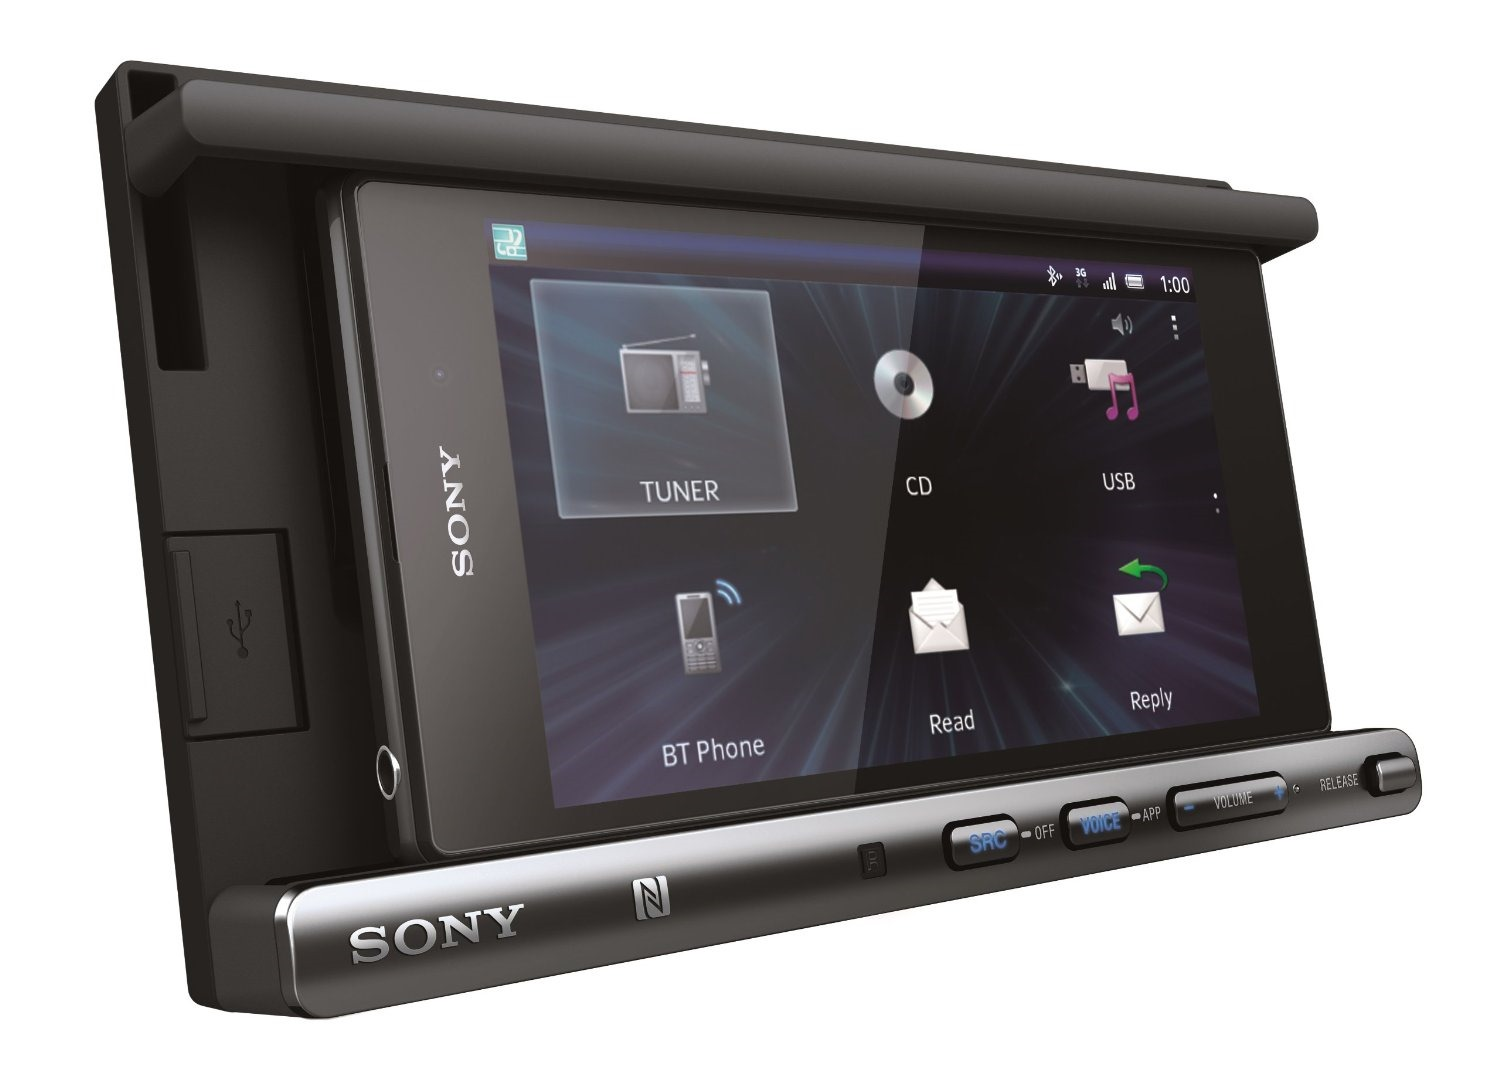 Sony Xperia Z3 Magnetic Charger Dock